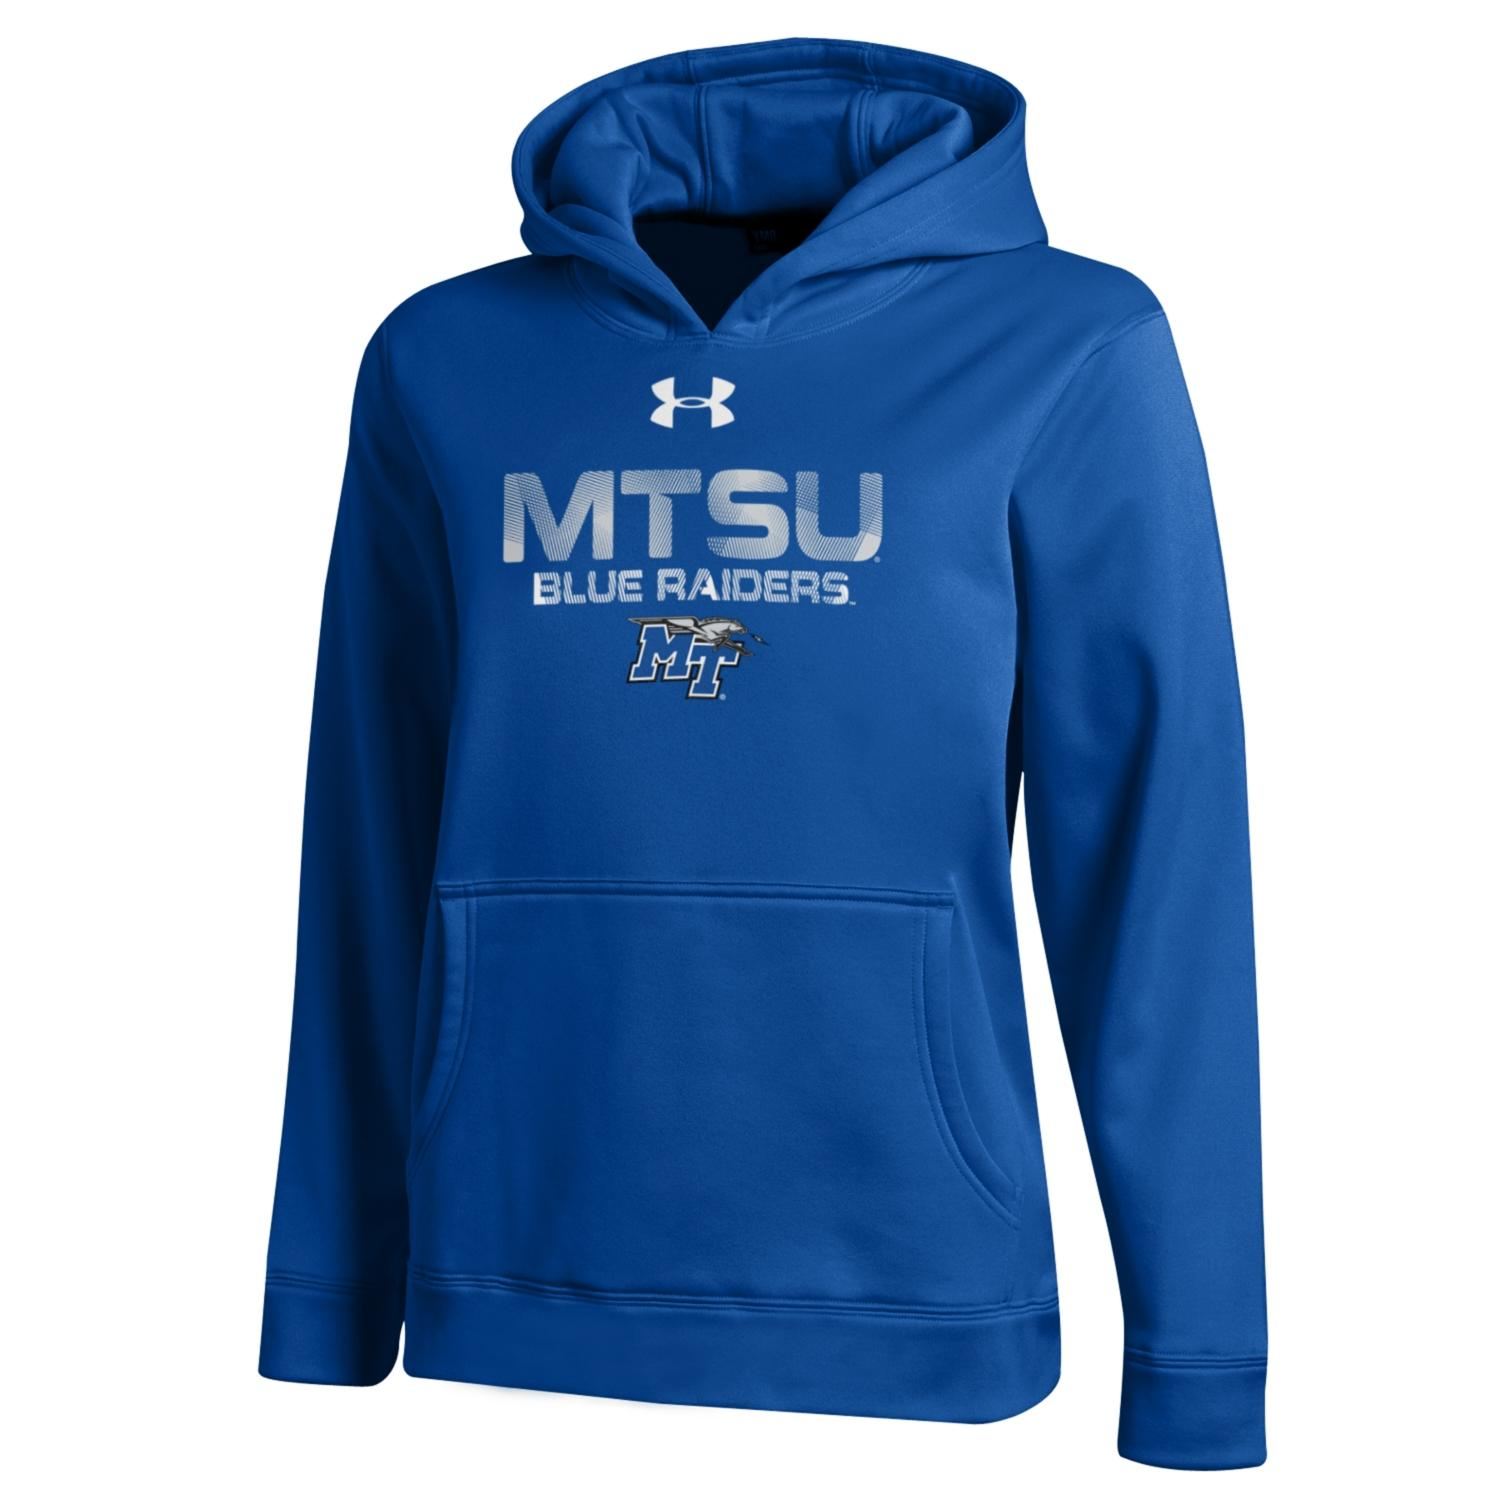 MTSU Blue Raiders Youth Performance Hoodie